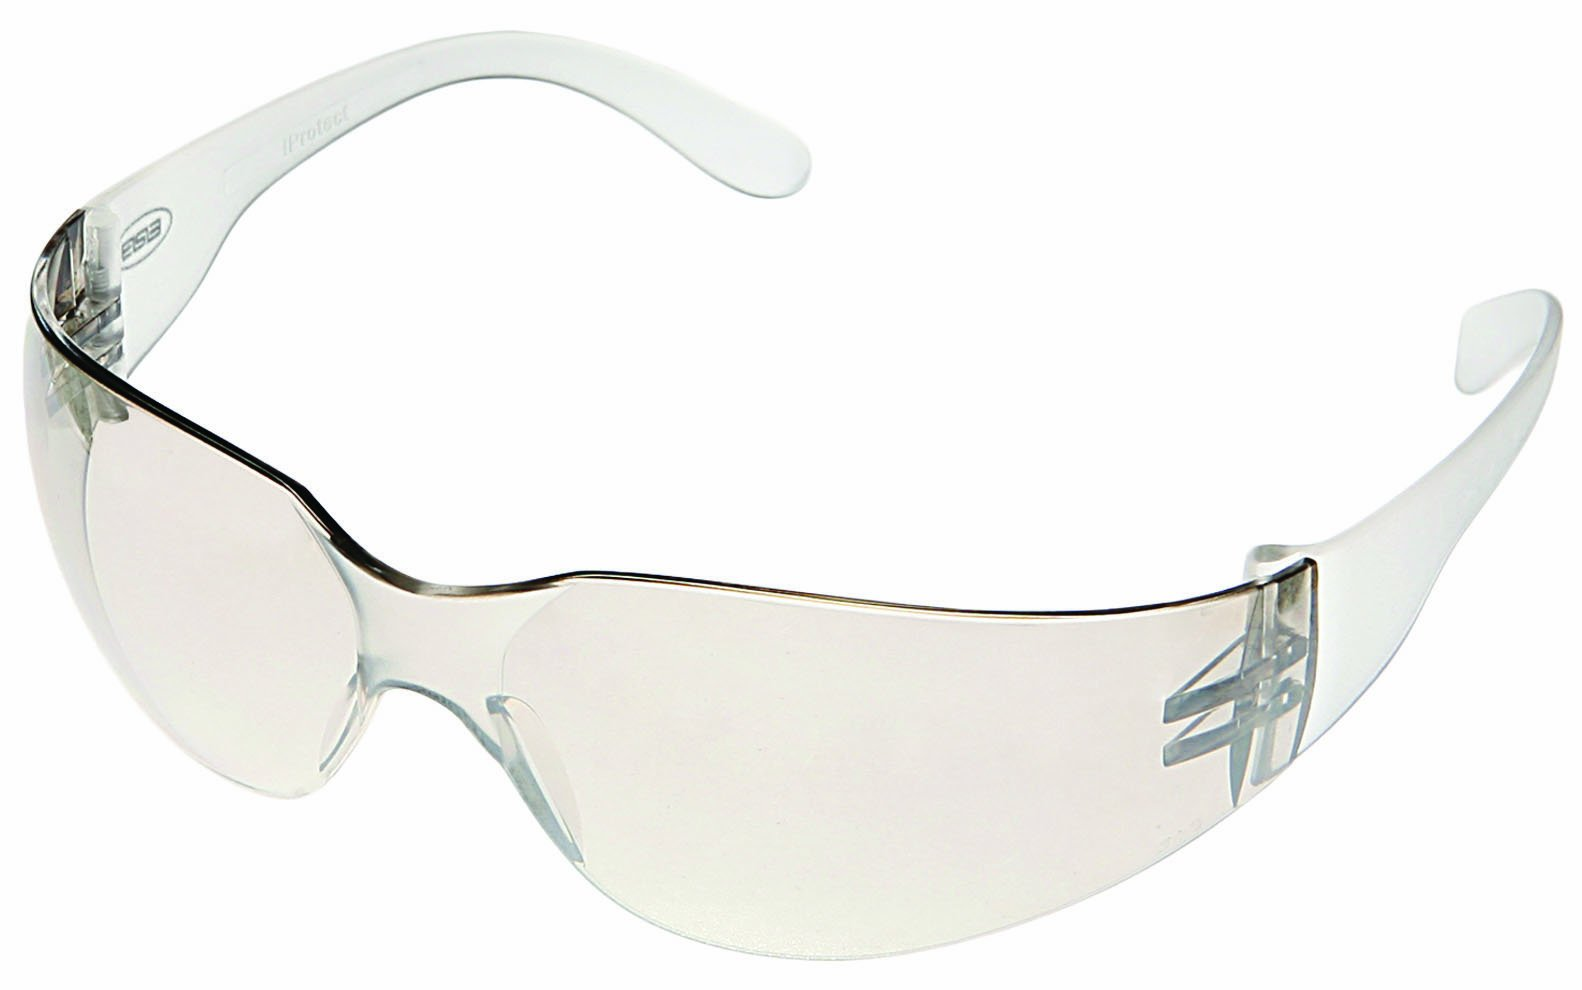 ERB 17500 Economy iProtect Safety Glasses, Clear Frame with Clear Lens by ERB